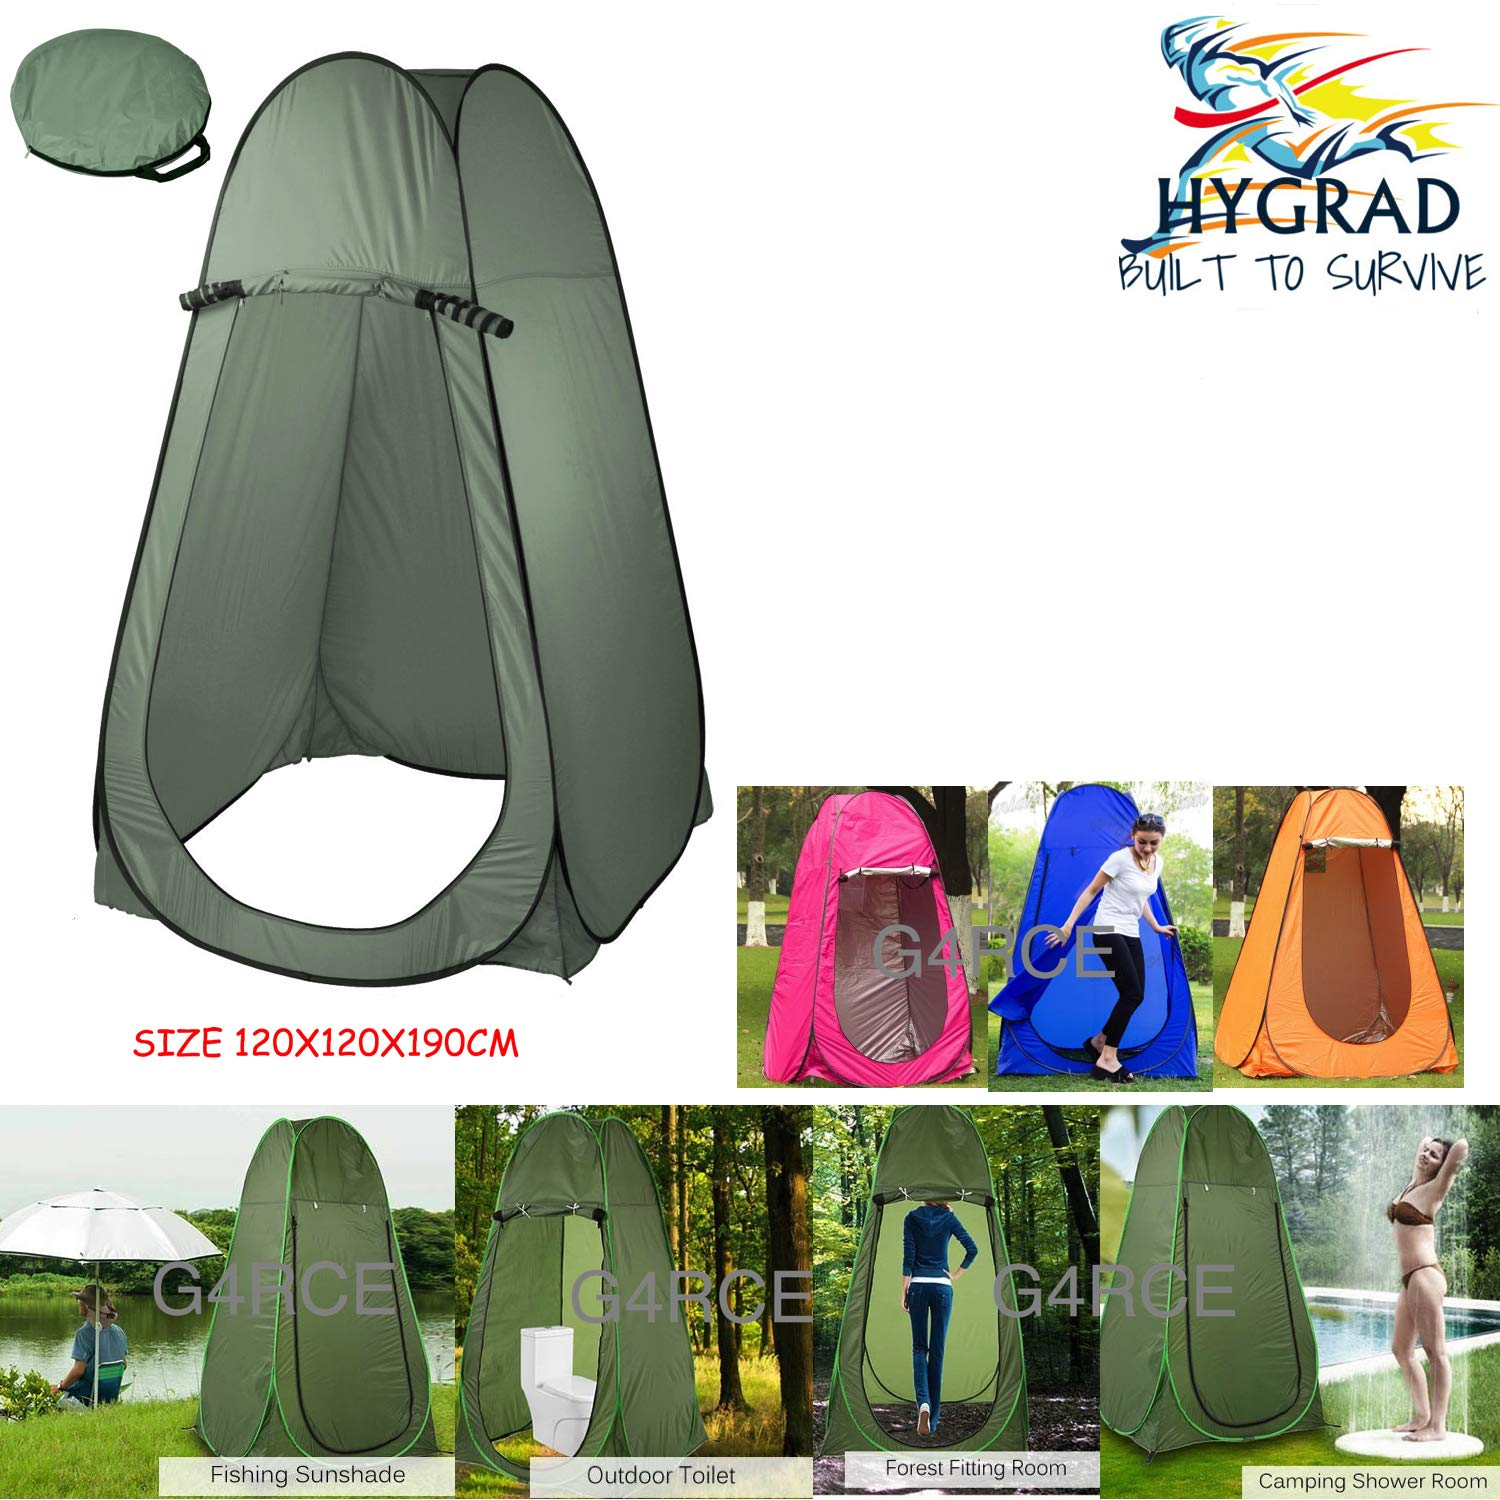 G4RCE® Portable Instant POP Up Tent Camping Toilet Shower